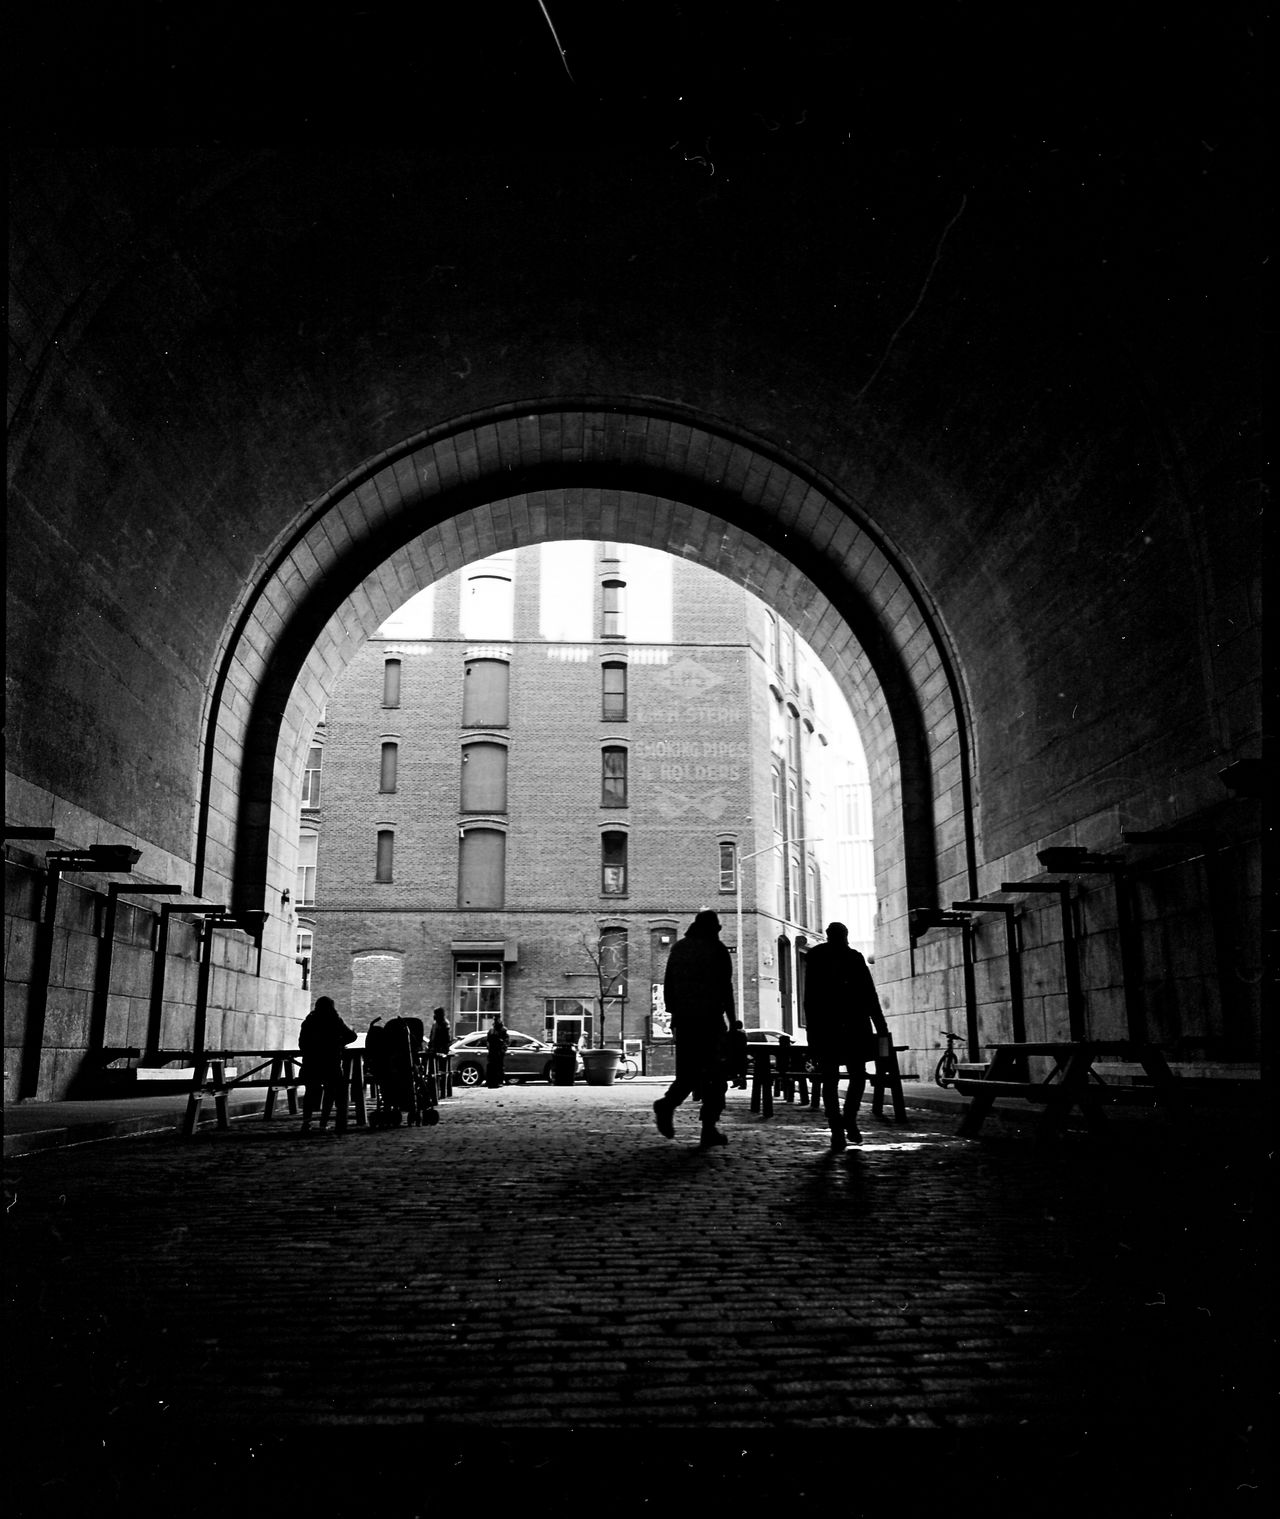 DUMBO with the Hasselblad. Adult Arch Architecture Black & White Building Exterior Built Structure City DUMBO Dumbo Brooklyn DUMBO, Brooklyn Film Noir Full Length Indoors  Men New York New York City Noir NYC People Real People Togetherness Walking Women First Eyeem Photo The Street Photographer - 2017 EyeEm Awards